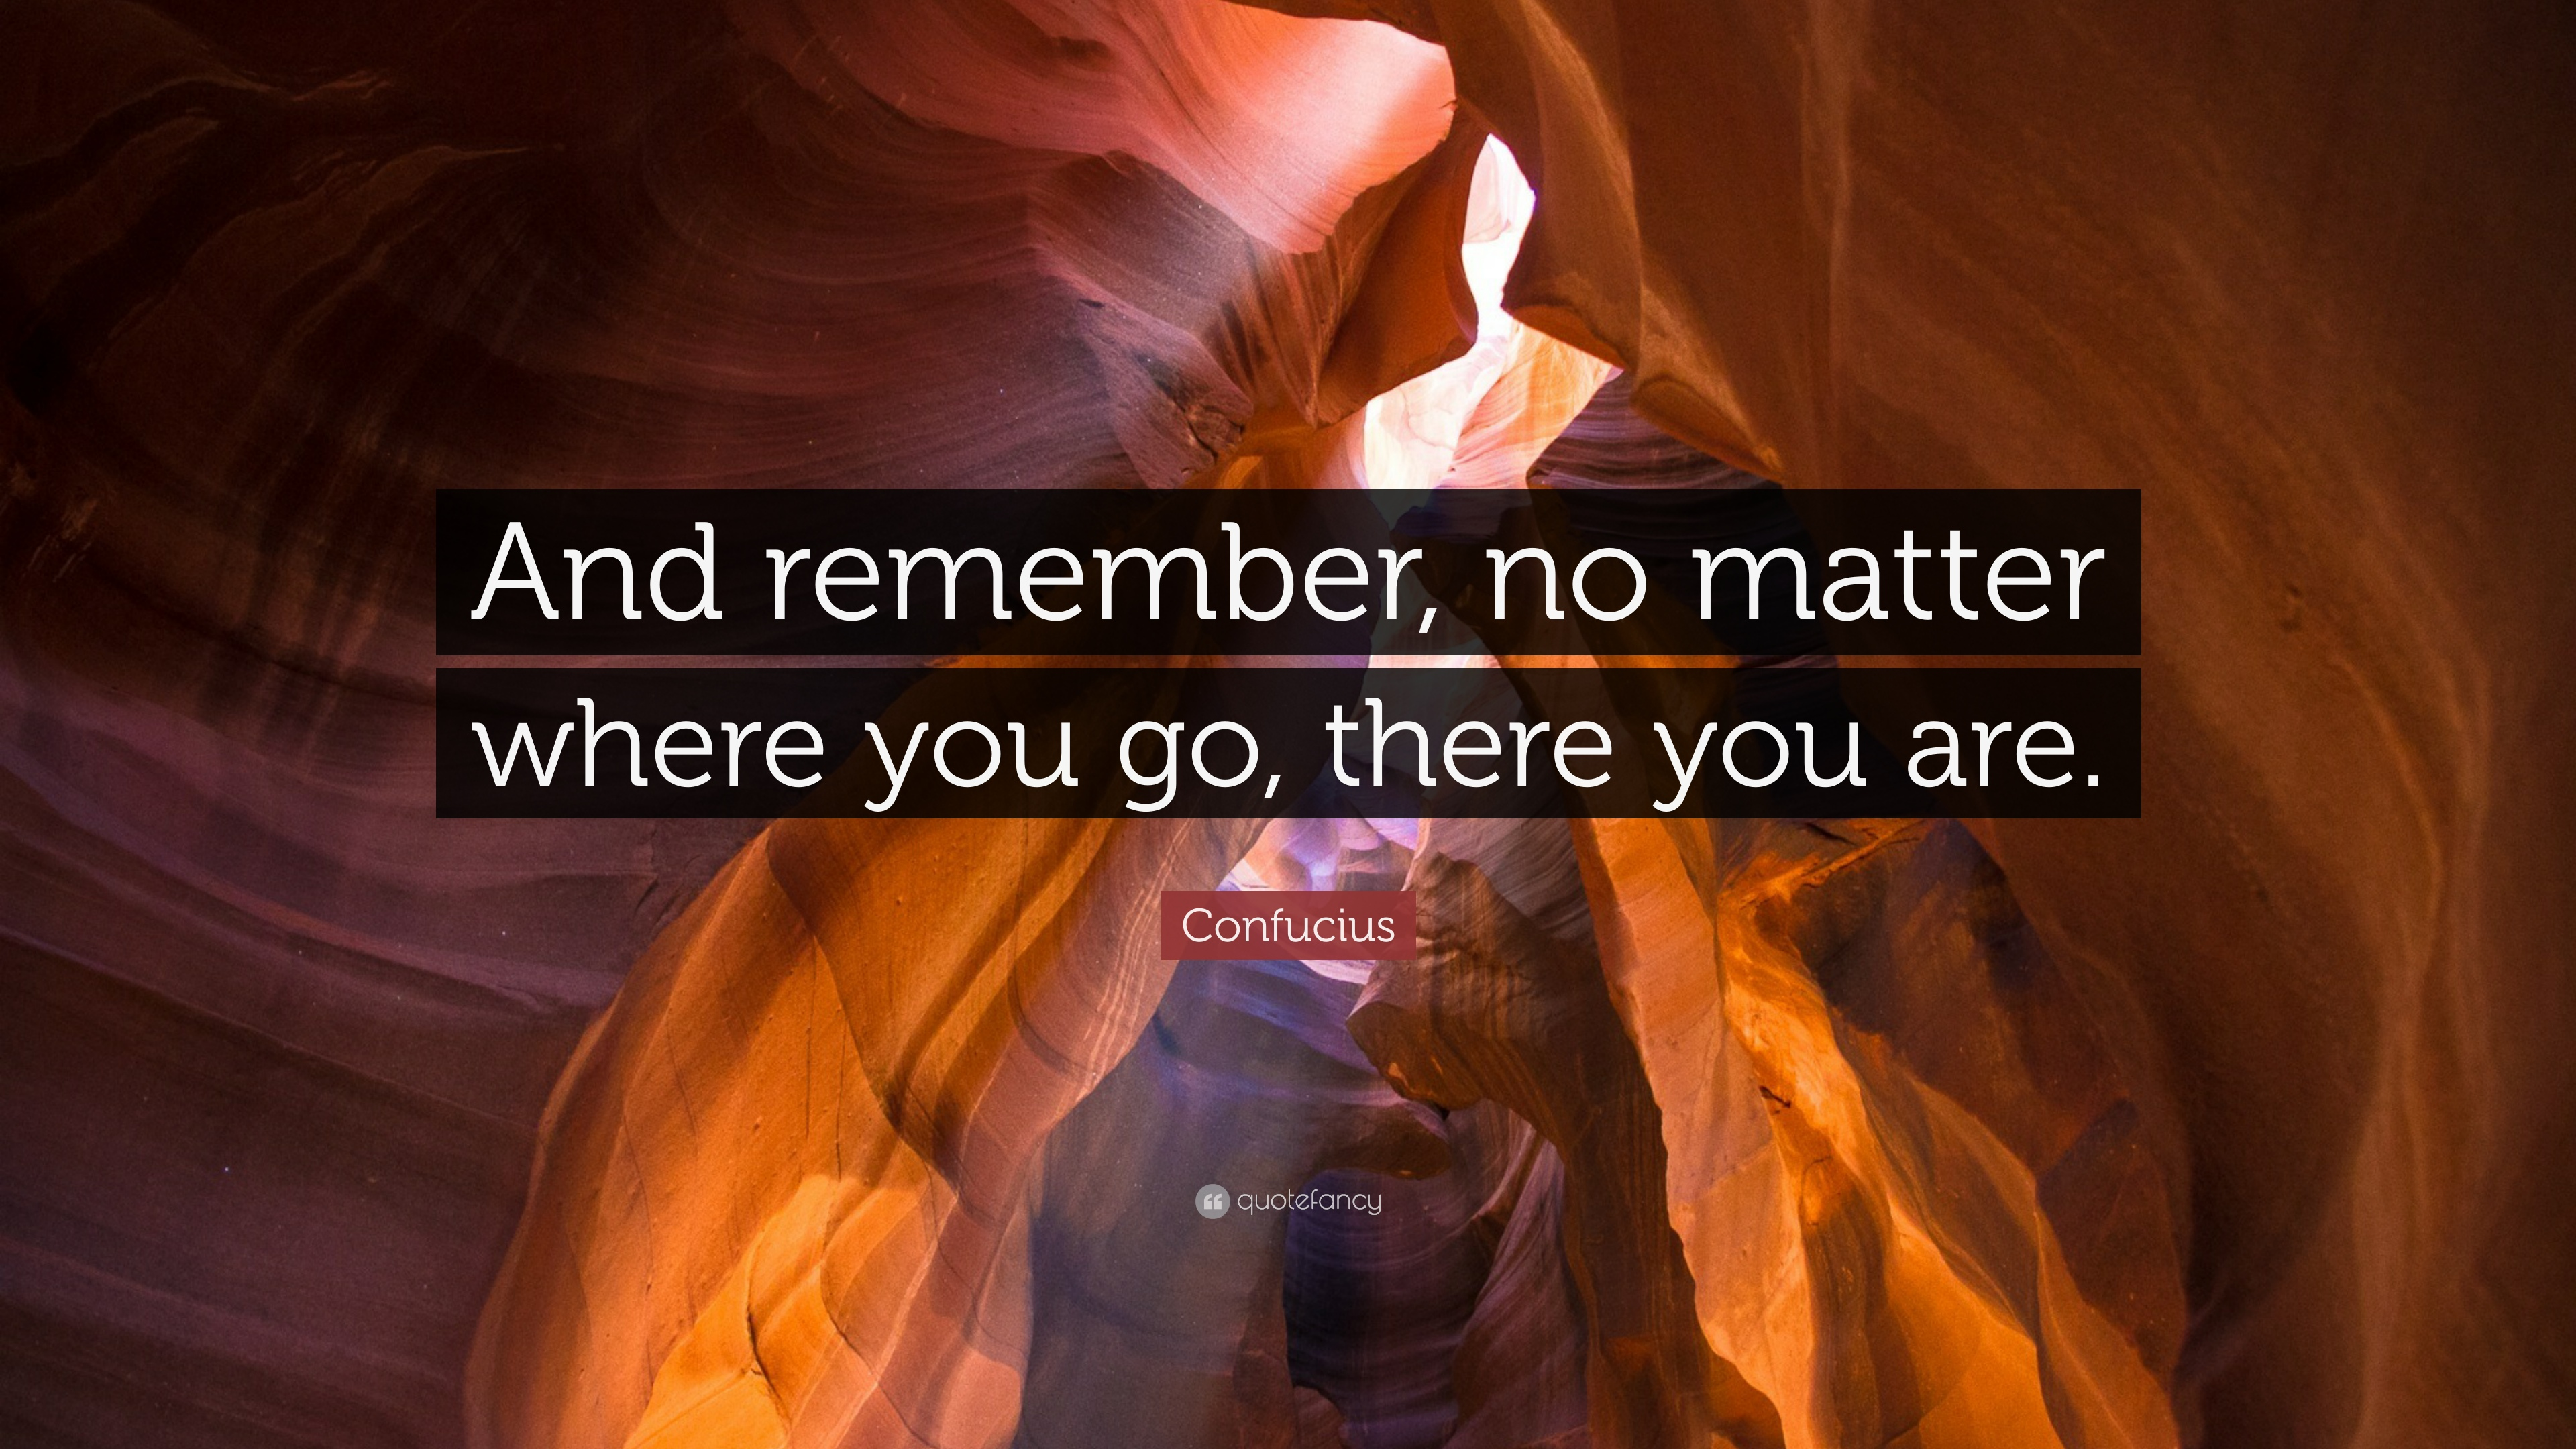 https://quotefancy.com/media/wallpaper/3840x2160/362388-Confucius-Quote-And-remember-no-matter-where-you-go-there-you-are.jpg